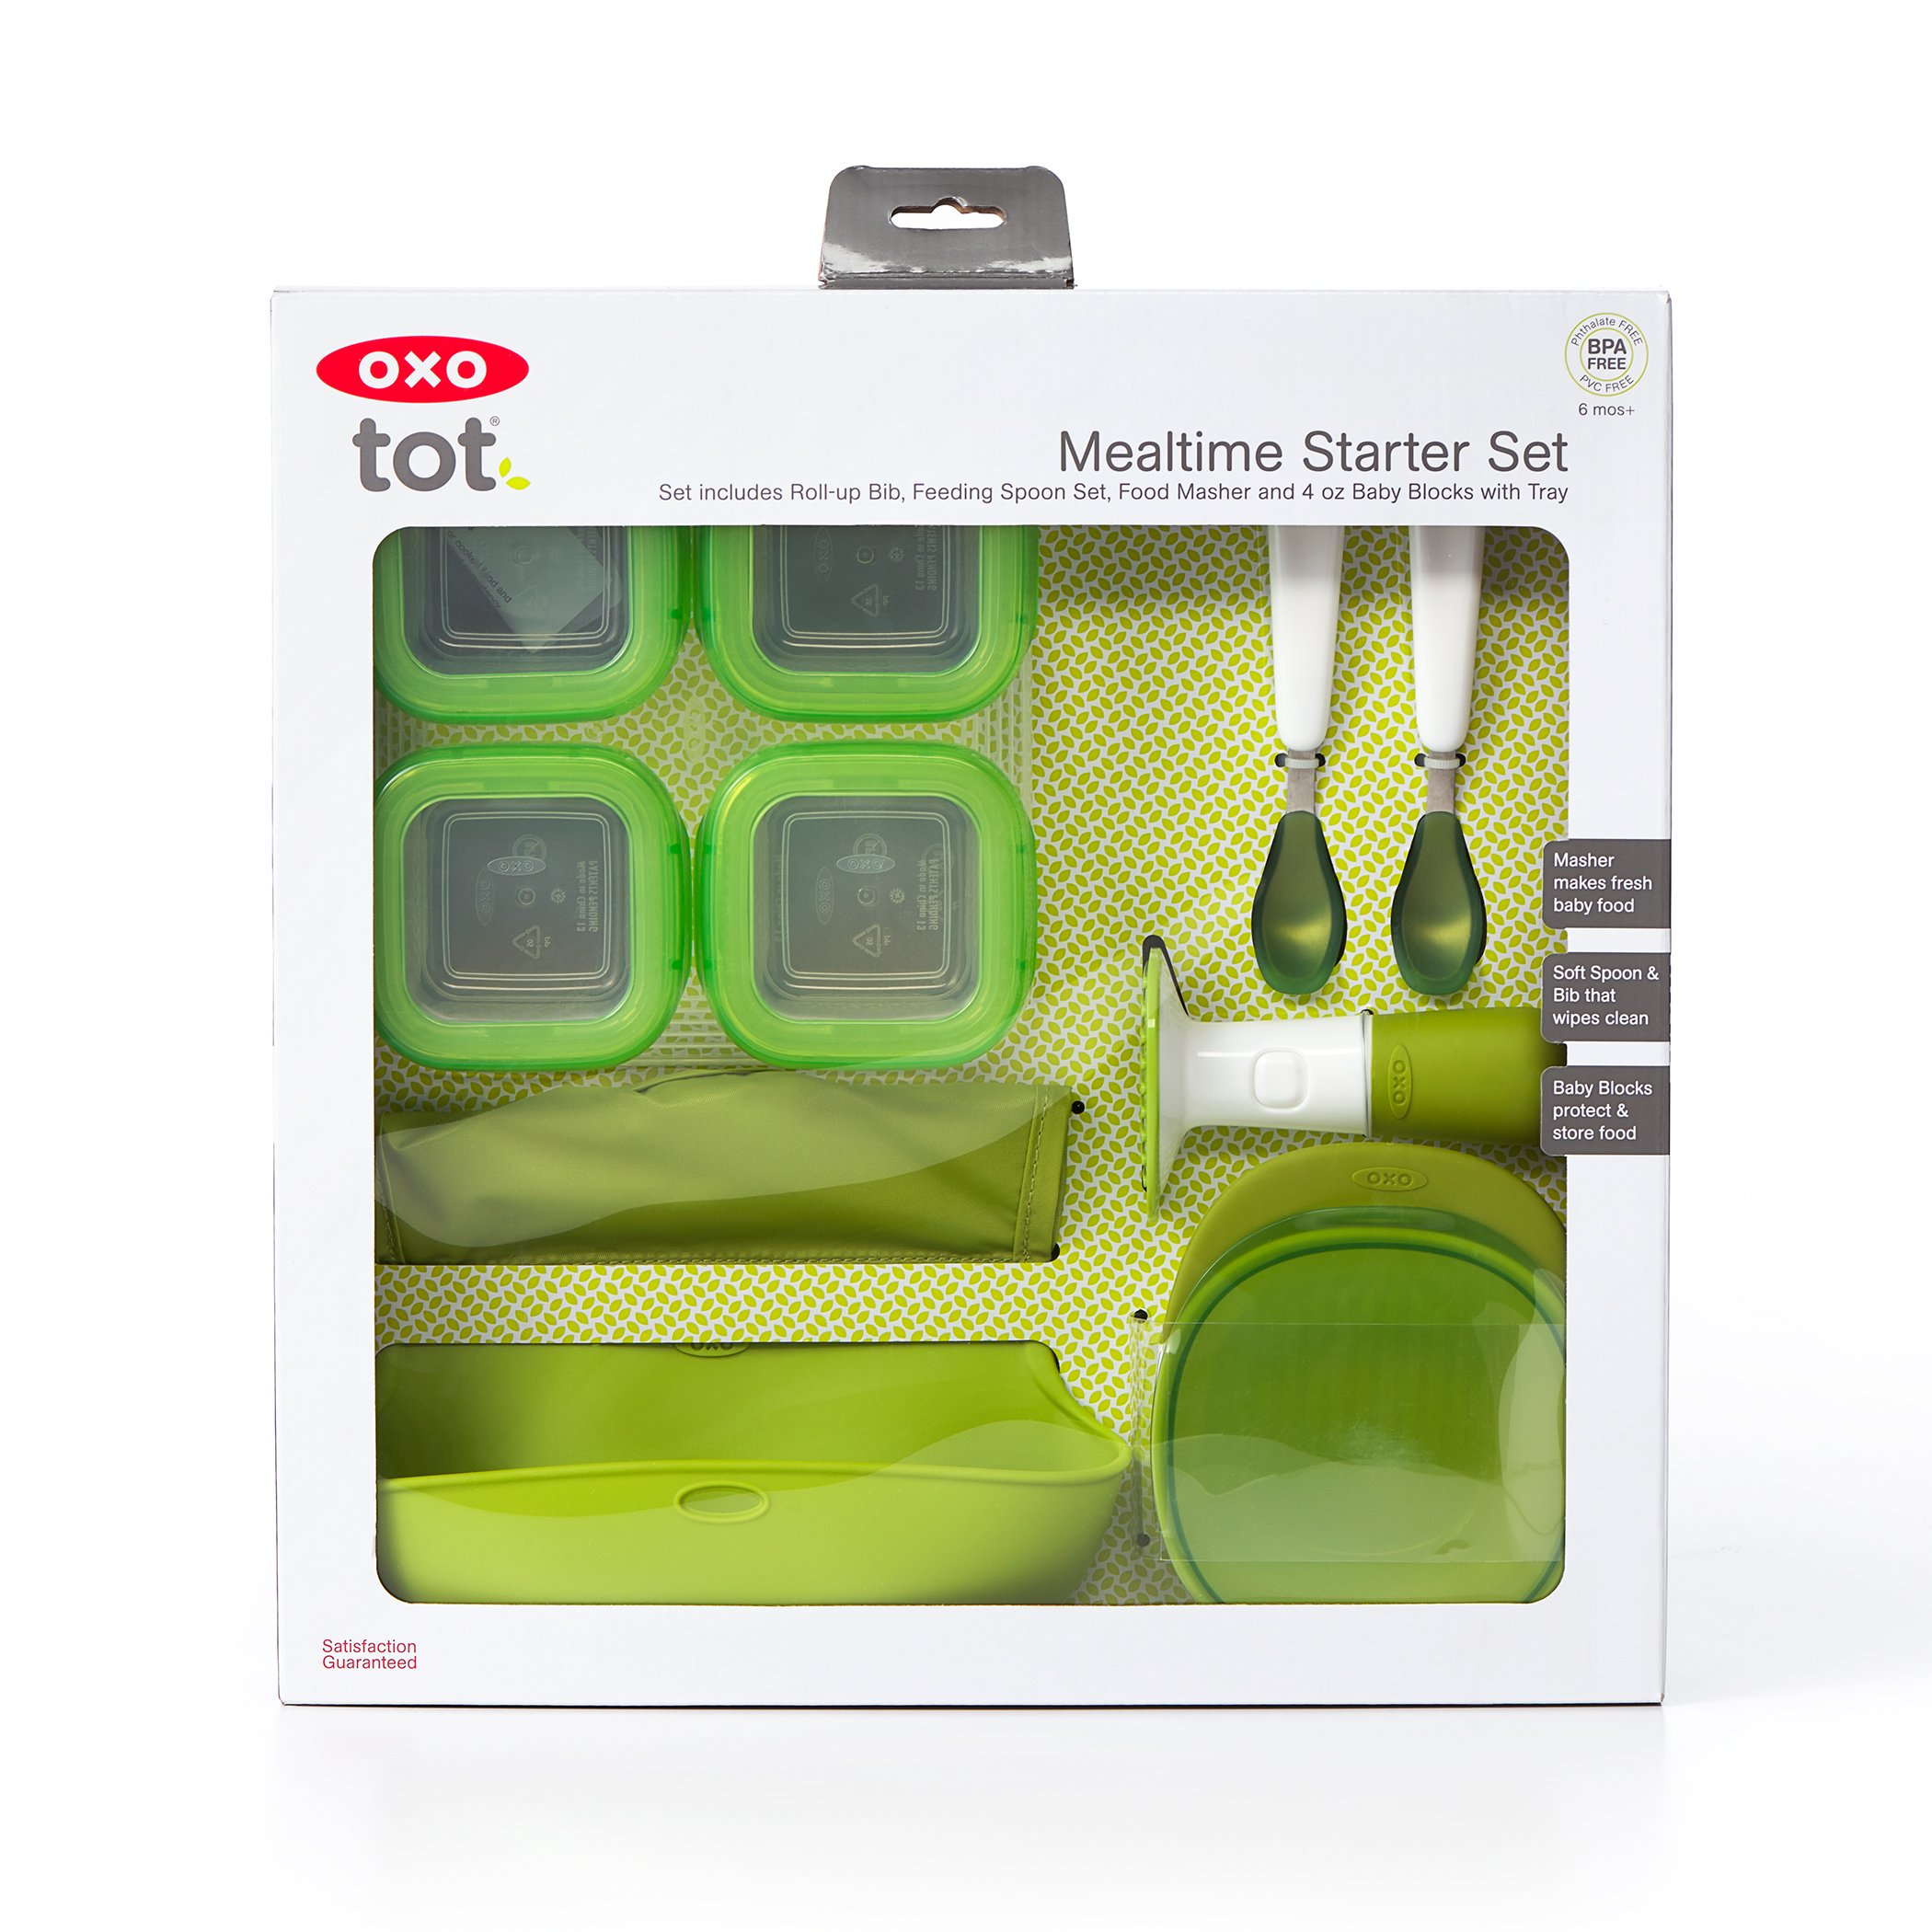 OXO Tot Mealtime Starter Value Set with Roll-up Bib, Feeding Spoons, Food Masher and Four 4oz Baby Blocks Freezer Storage Containers by OXO Tot (Image #17)